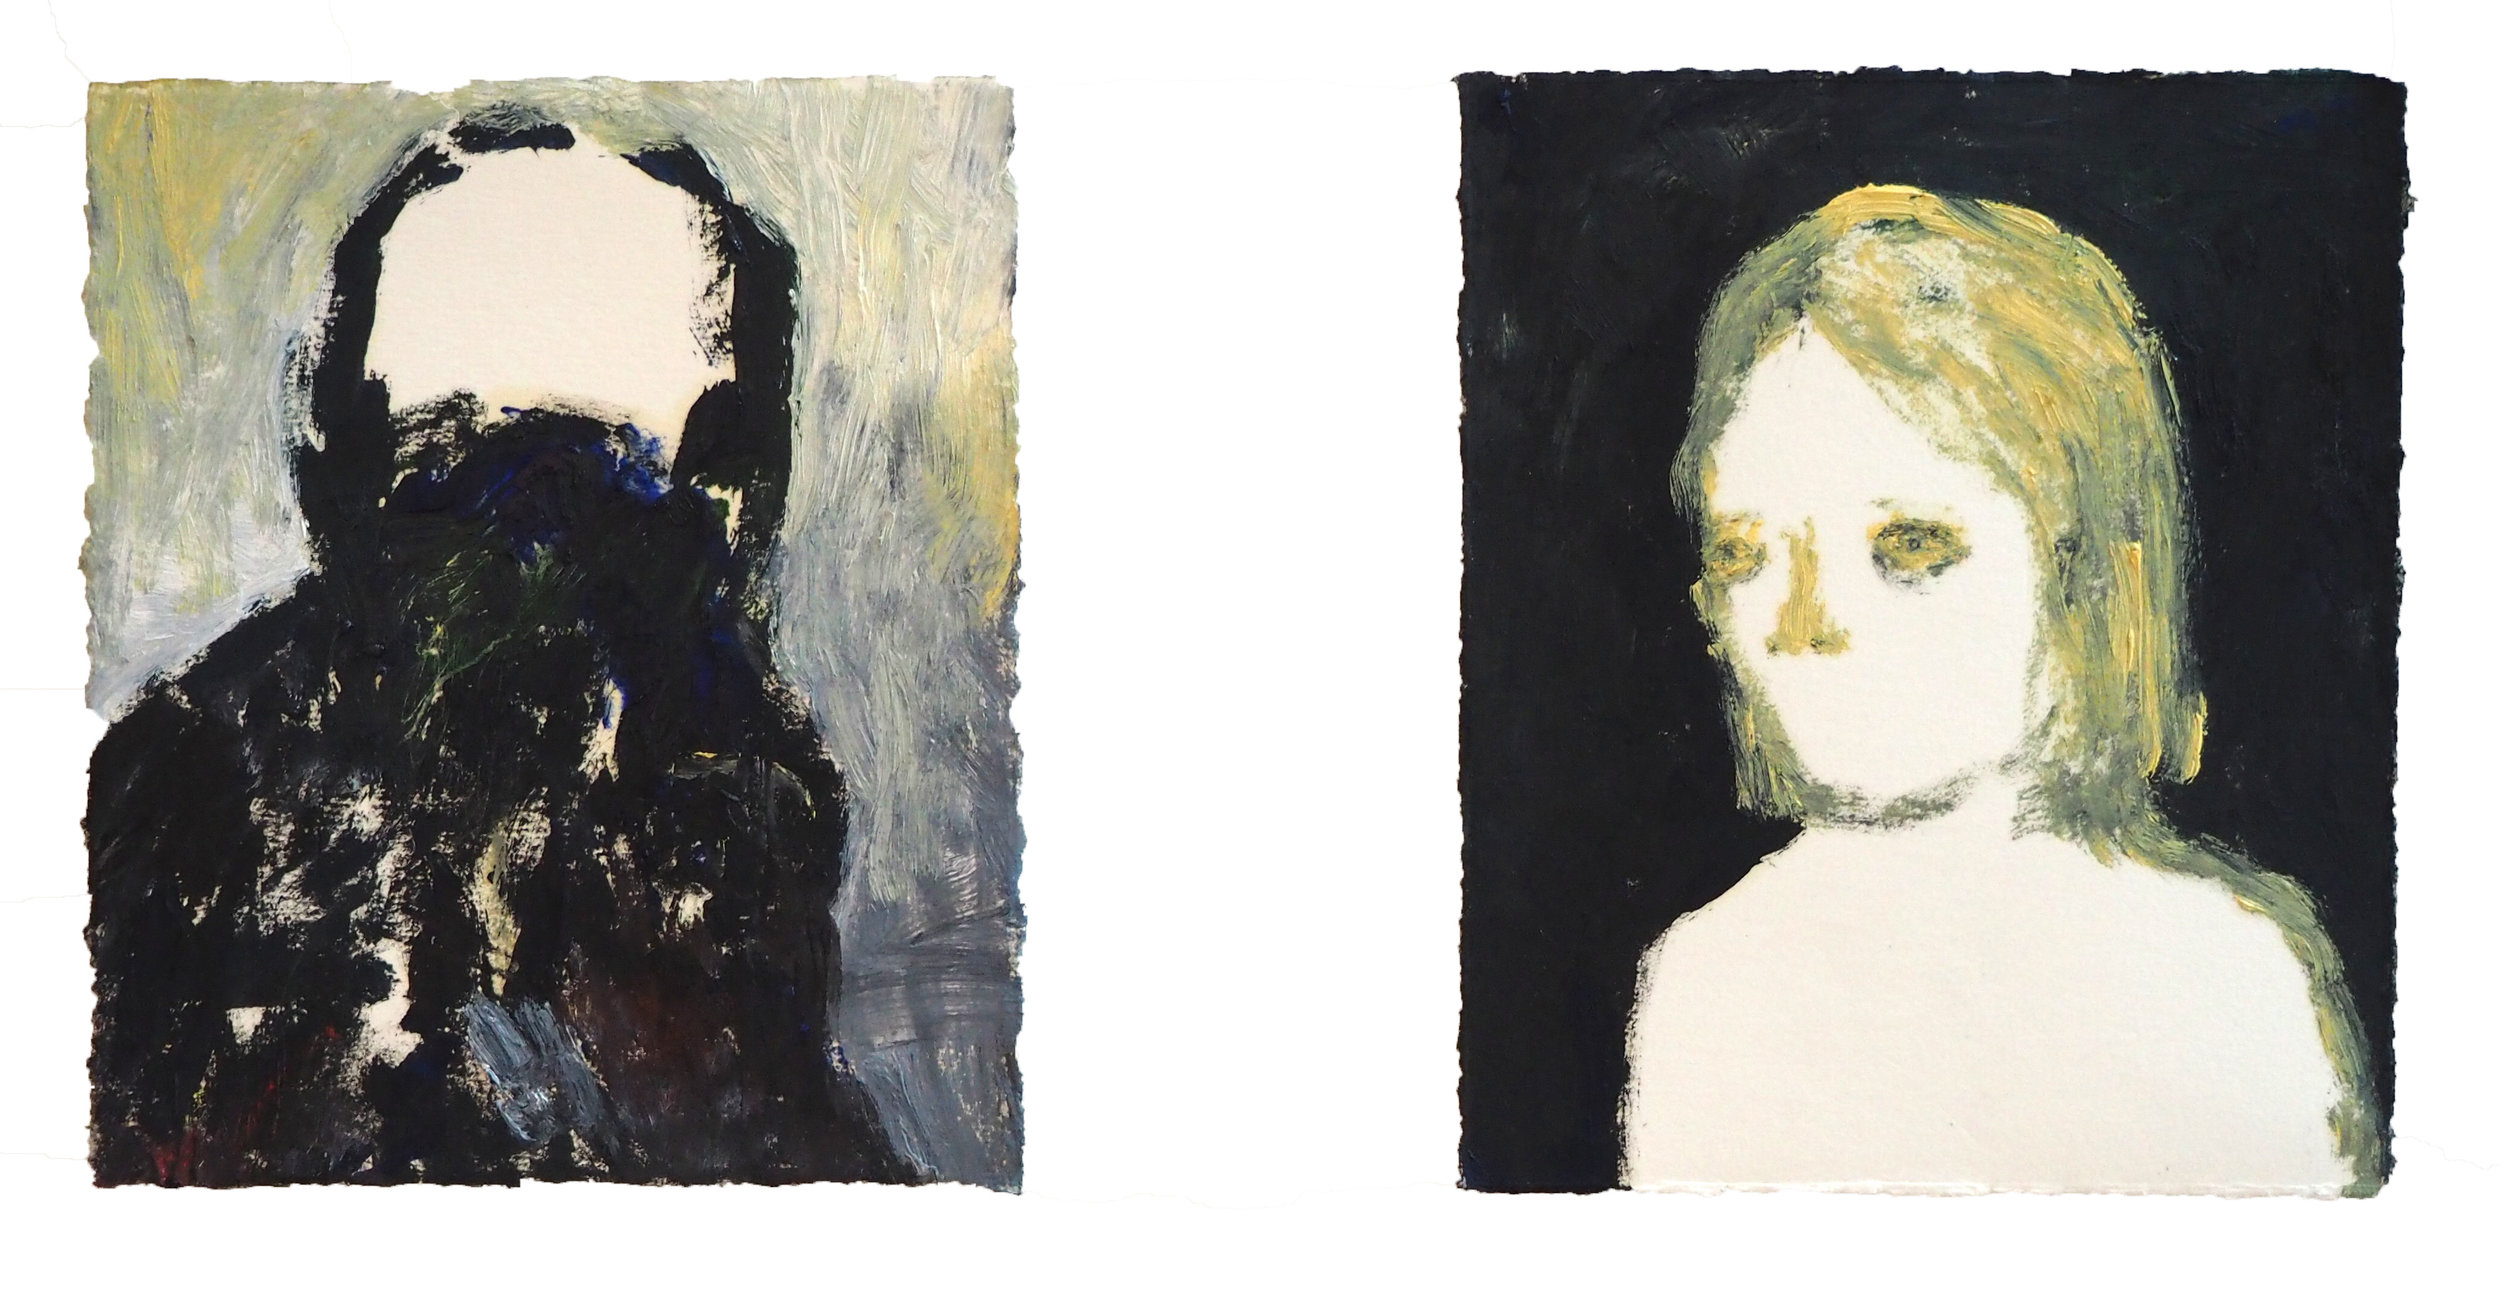 TRIGGER WARNING: Exhibition contains themes of sexual assault     Wilful Blindness  diptych, 2015 Oil on paper 12 x 10.5 cm each